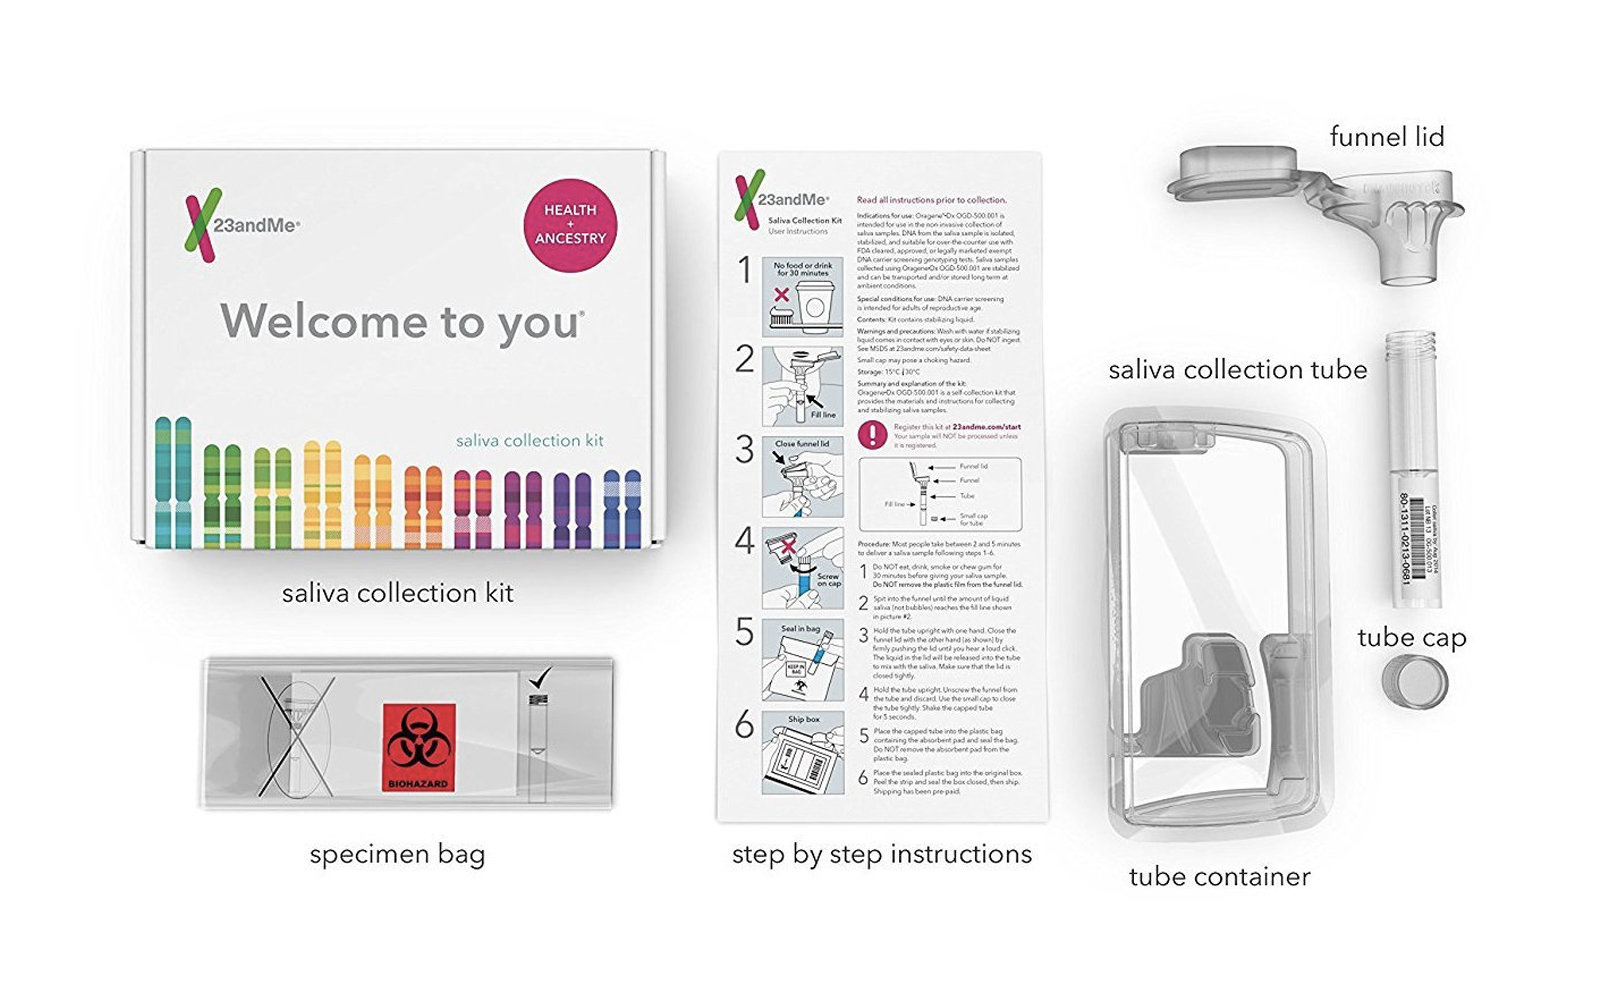 23andMe's Popular DNA Test Kit Is 50% Off Right Now